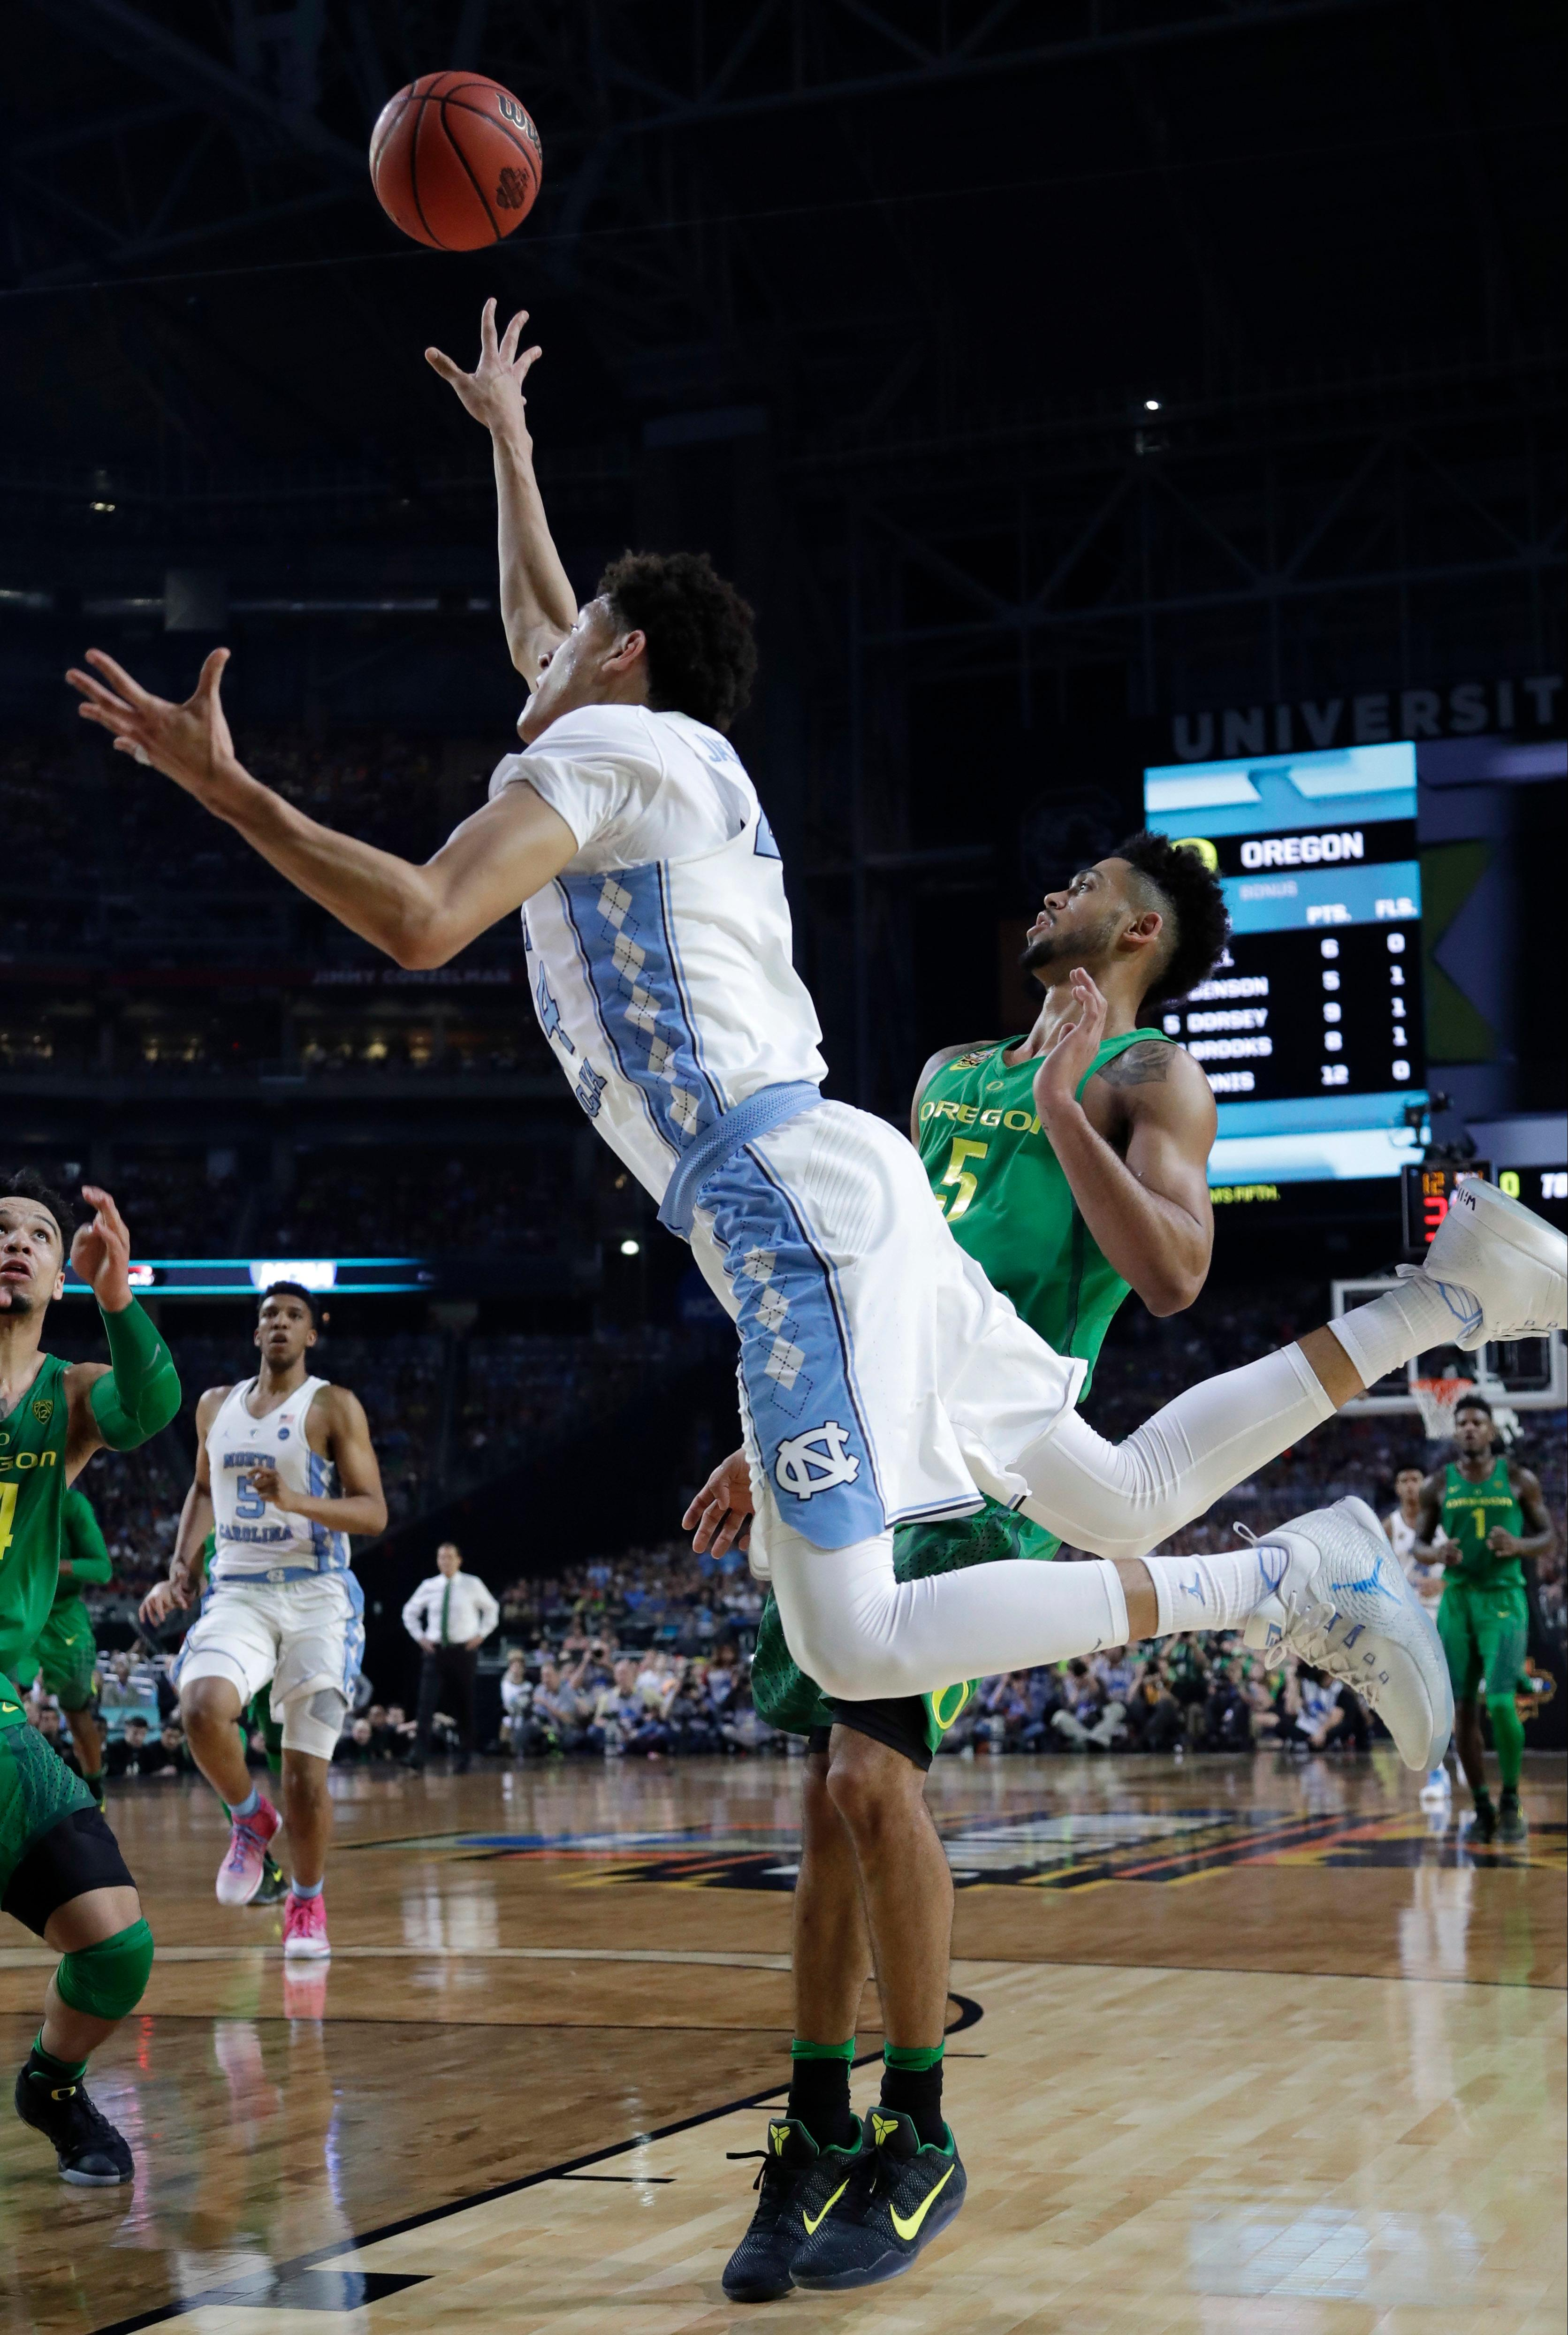 North Carolina forward Justin Jackson shoots over Oregon guard Tyler Dorsey, right, during the second half in the semifinals of the Final Four NCAA college basketball tournament, Saturday, April 1, 2017, in Glendale, Ariz. (AP Photo/David J. Phillip)